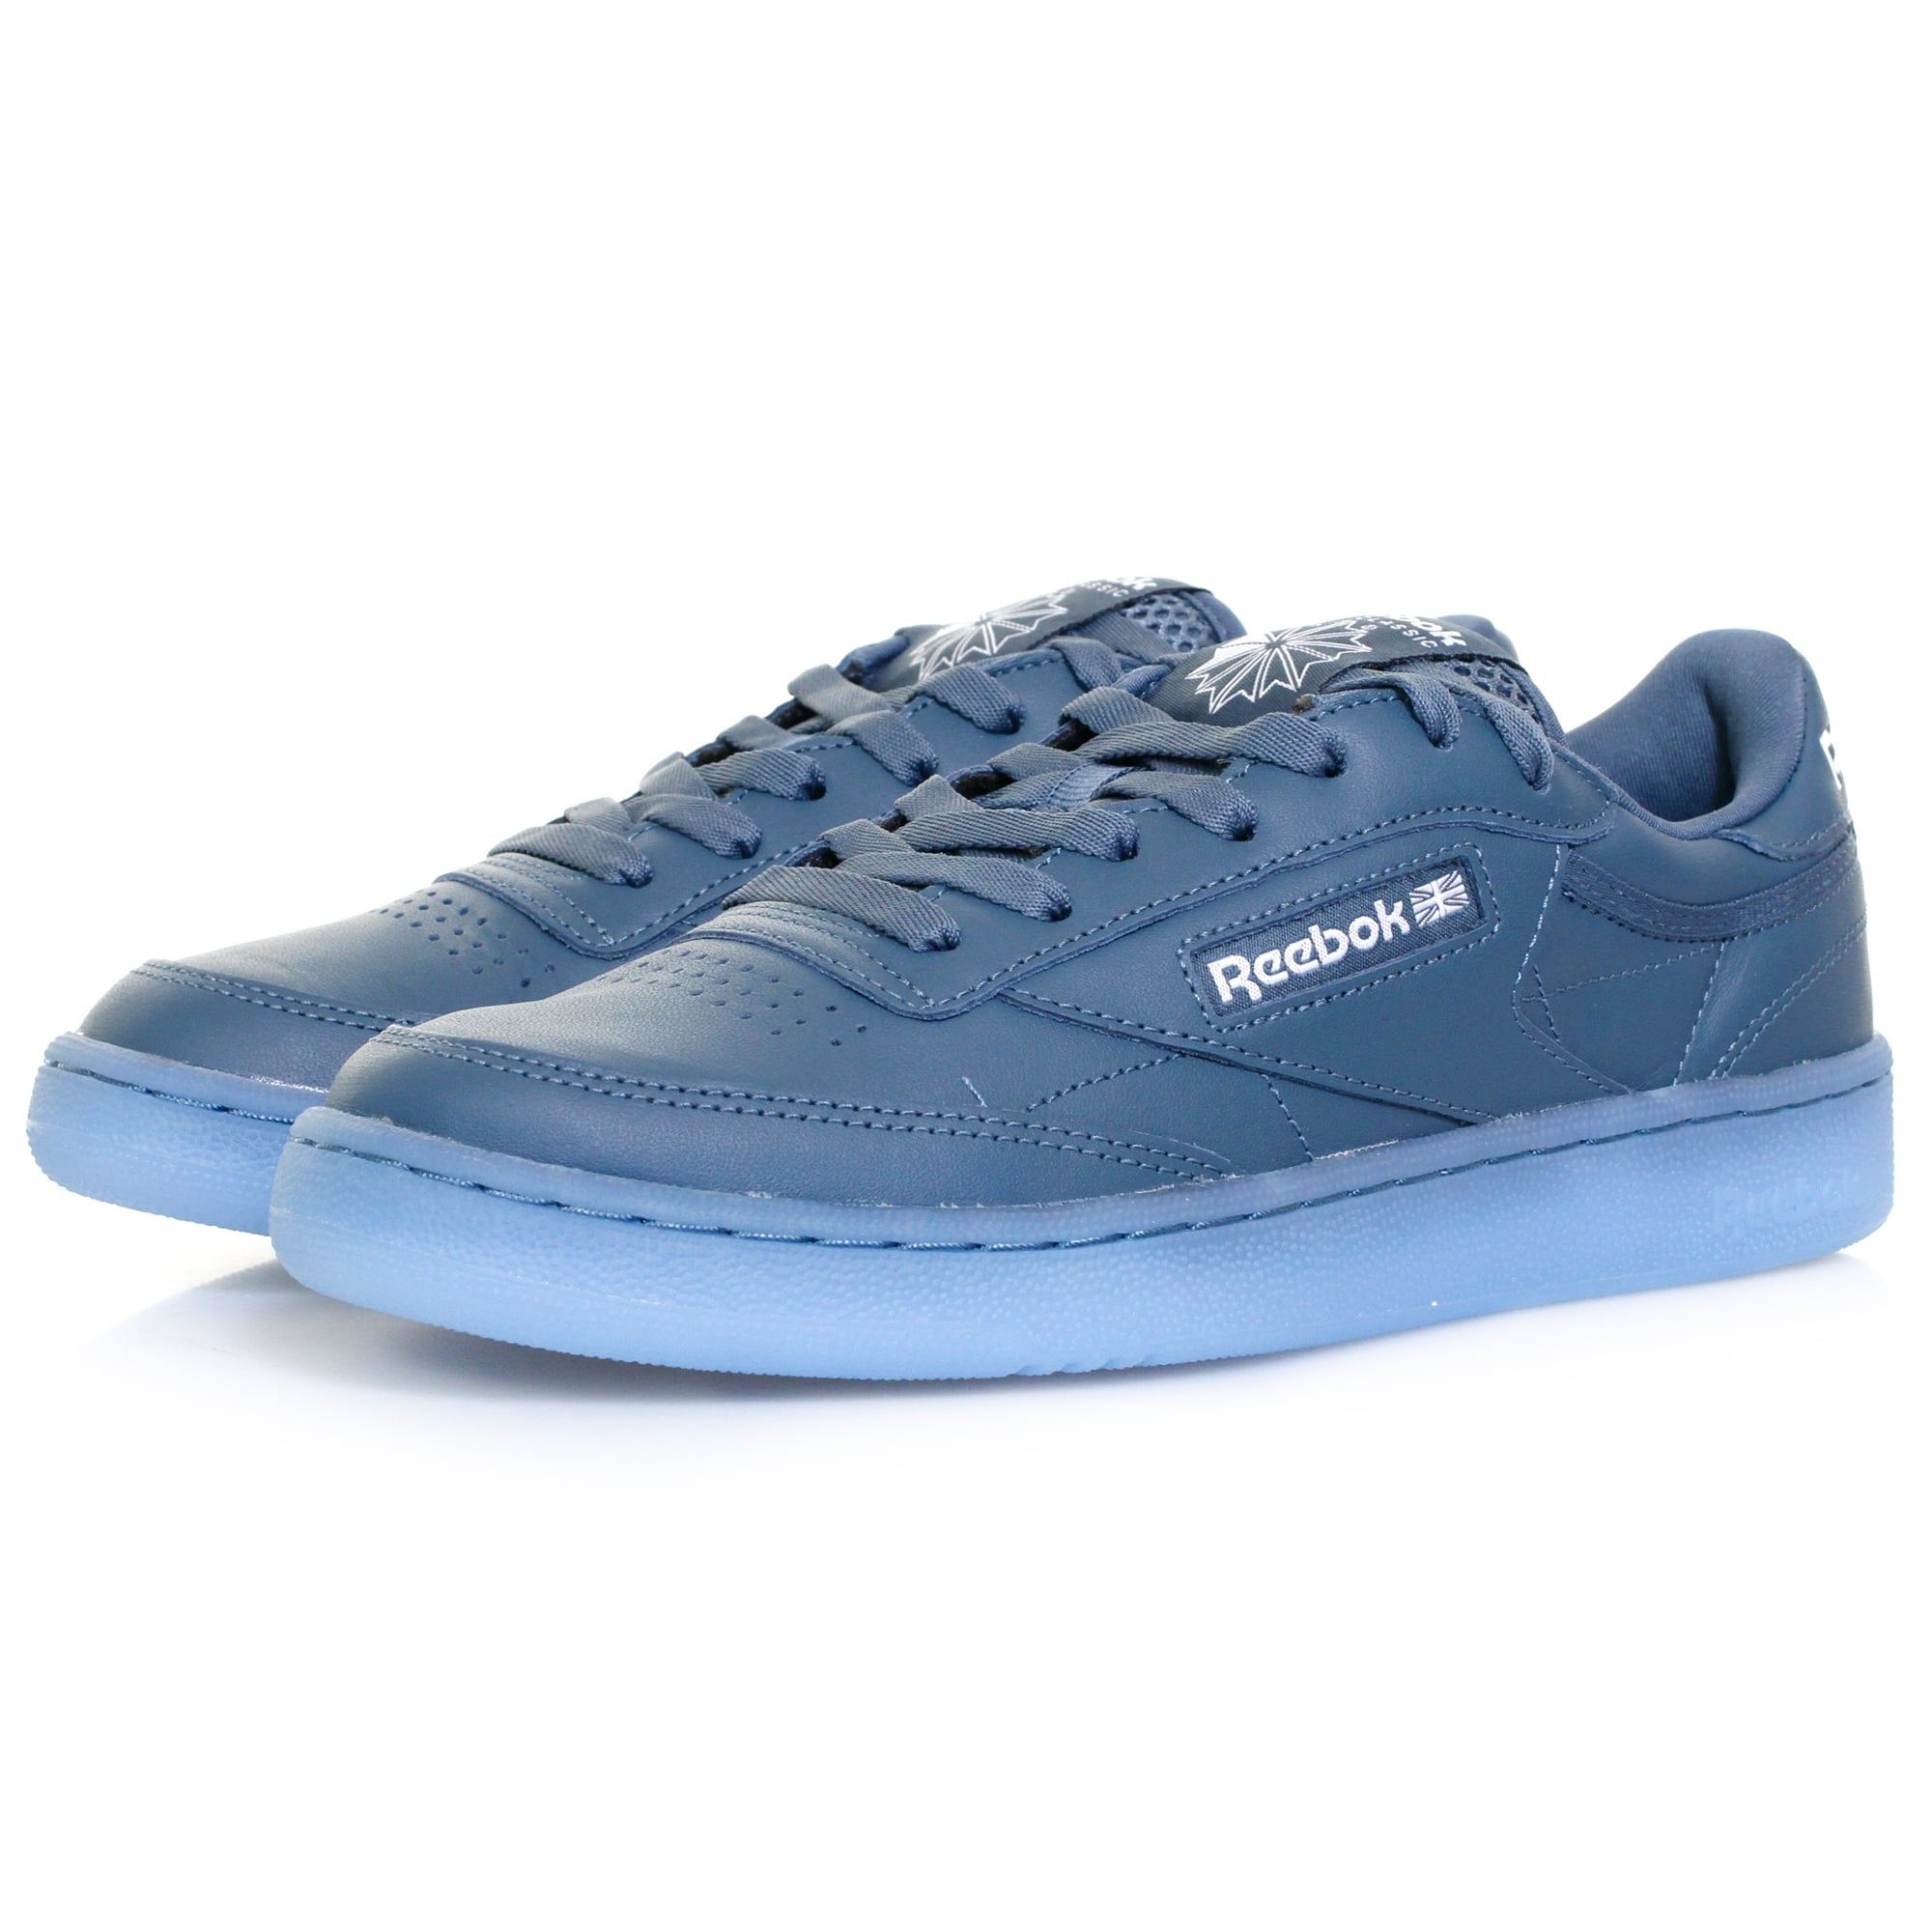 684bb1e399b96 Reebok Club C85 Ice Blue Shoe BD1672